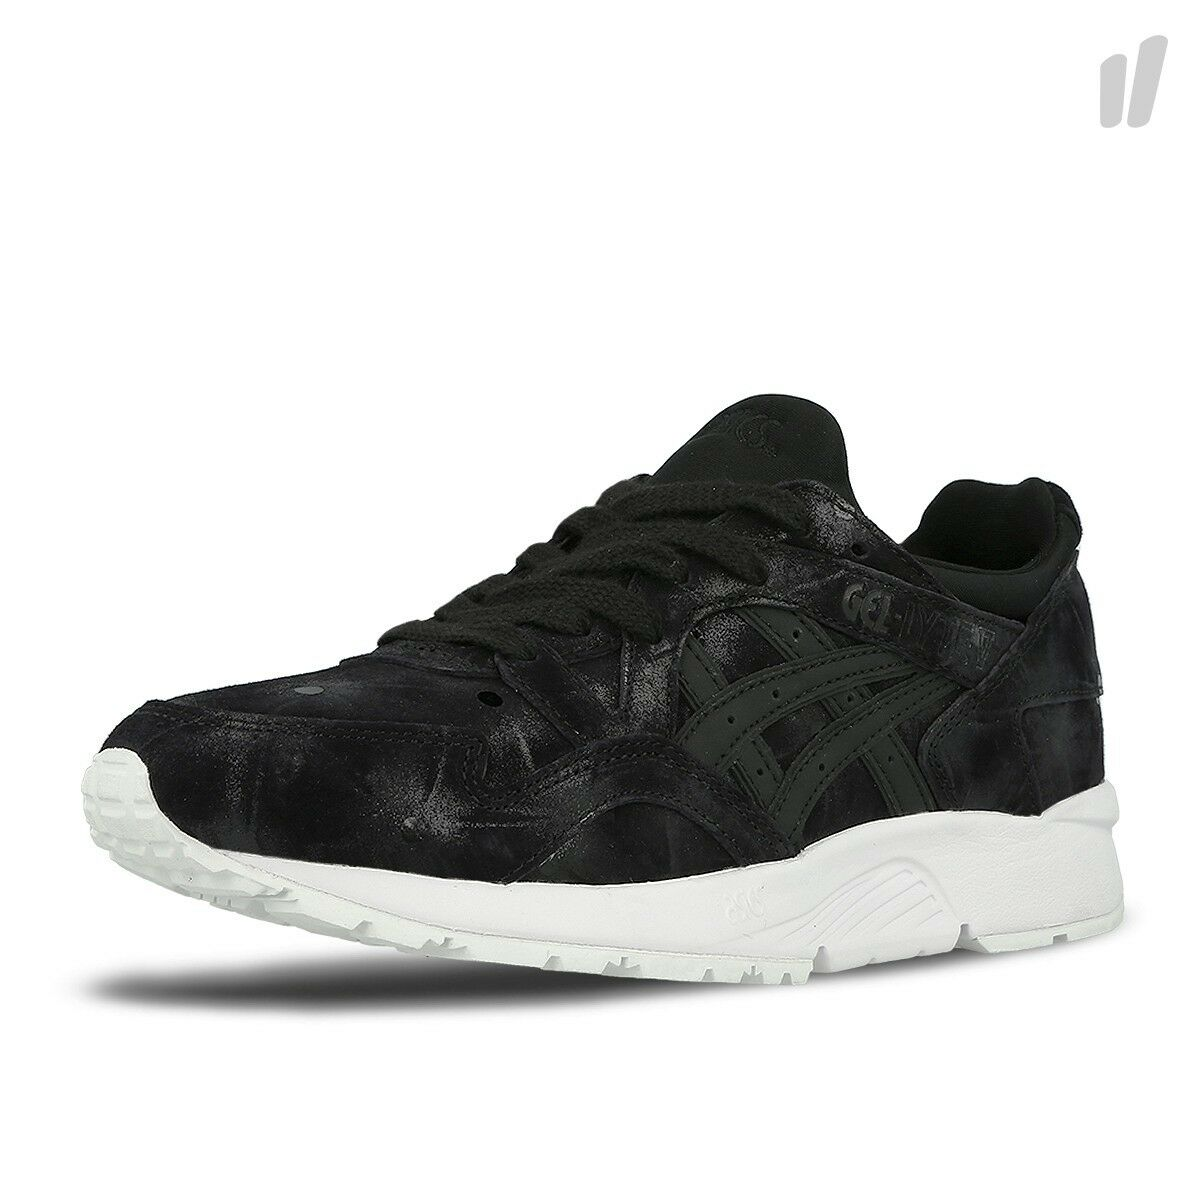 ASICS Tiger GEL-Lyte V Women's (Size 9) Black HL7E9-9090